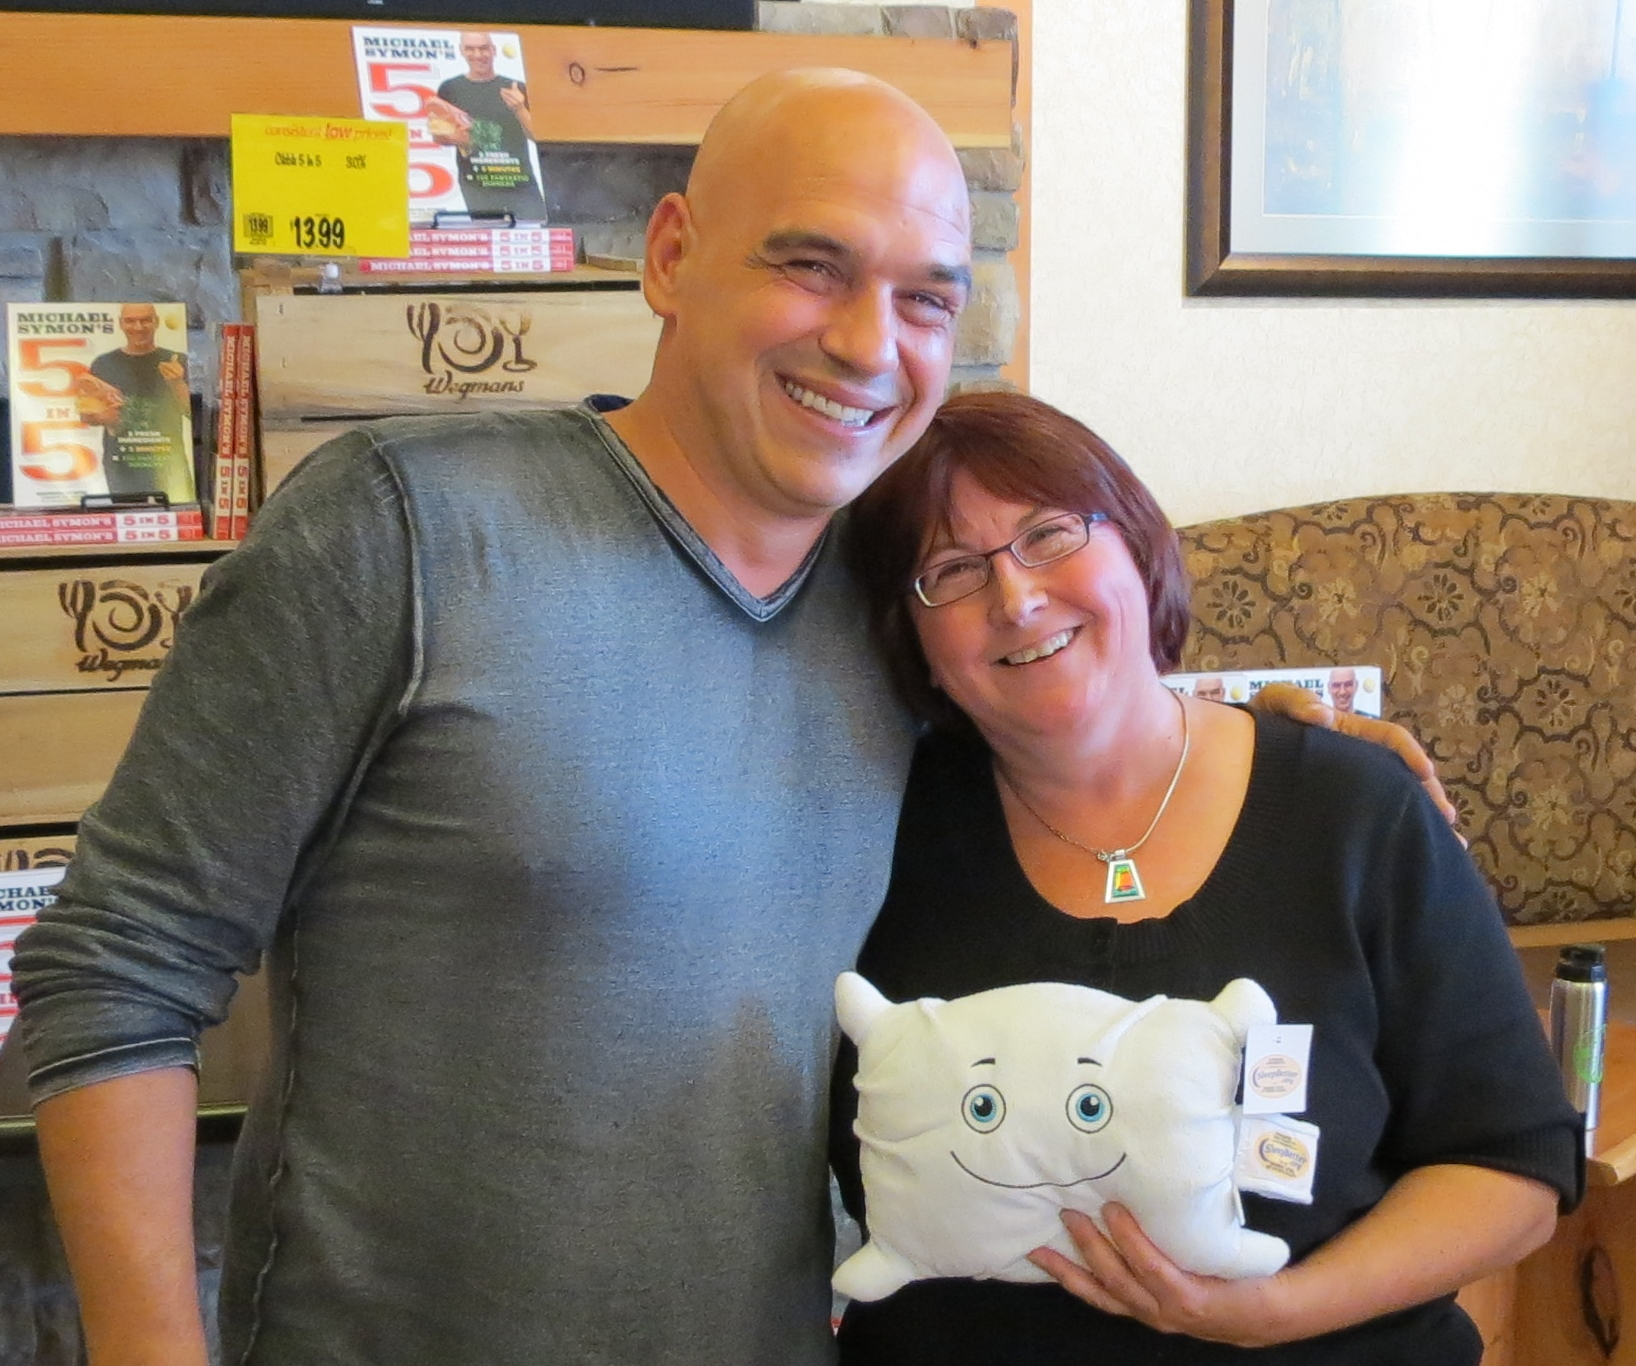 Phil O. and Mom met his favorite celebrity chef- Iron Chef Michael Symon who also co-hosts The Chew. They could only get one picture, so Phil let Mom get in the picture with him.